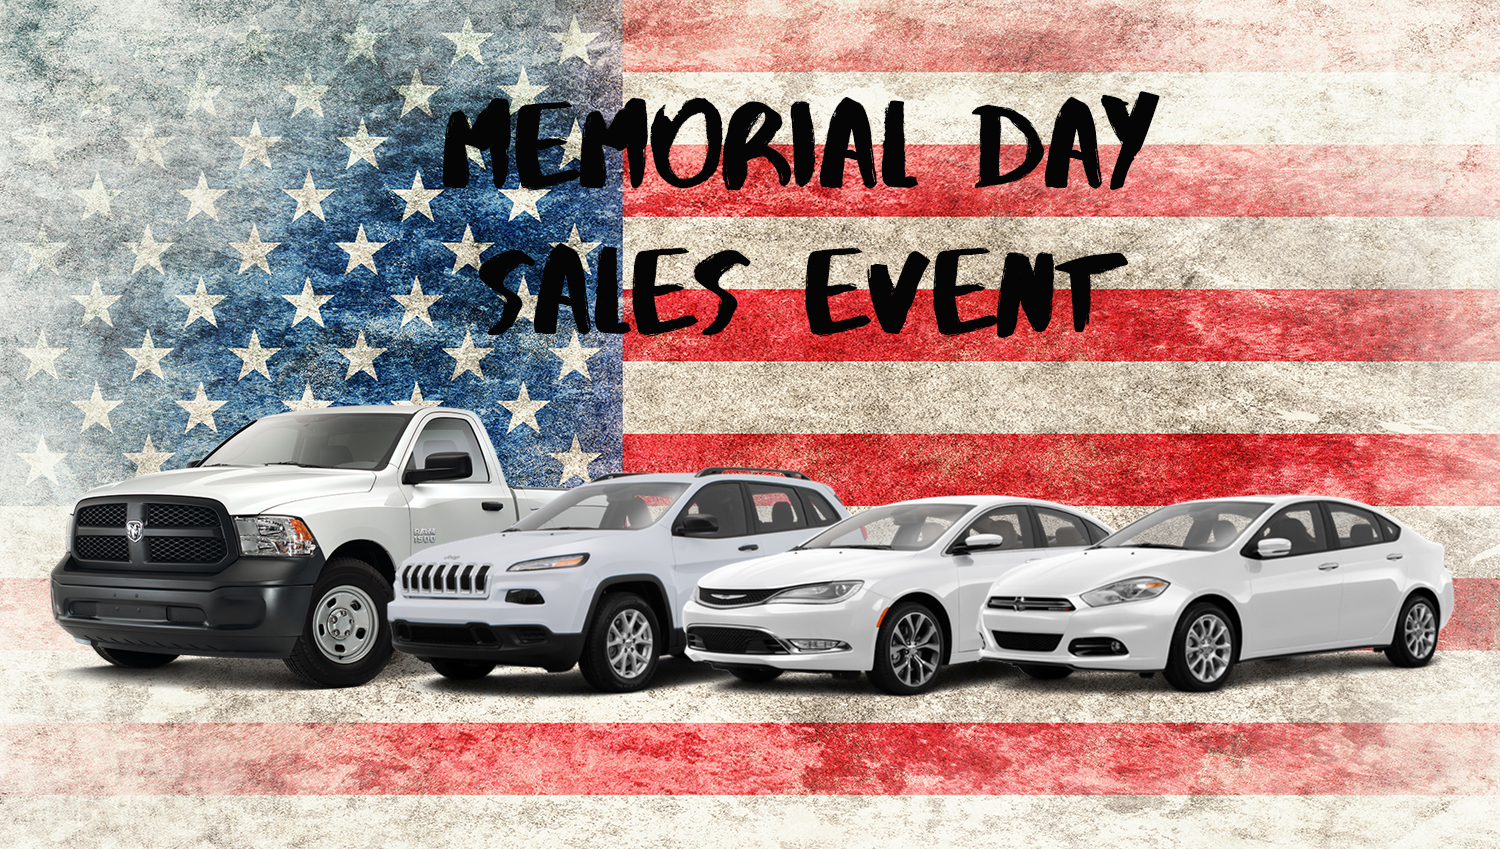 Memorial Day Car Sale >> Awesome Memorial Day Offers On Fca Cars Aventura Chrysler